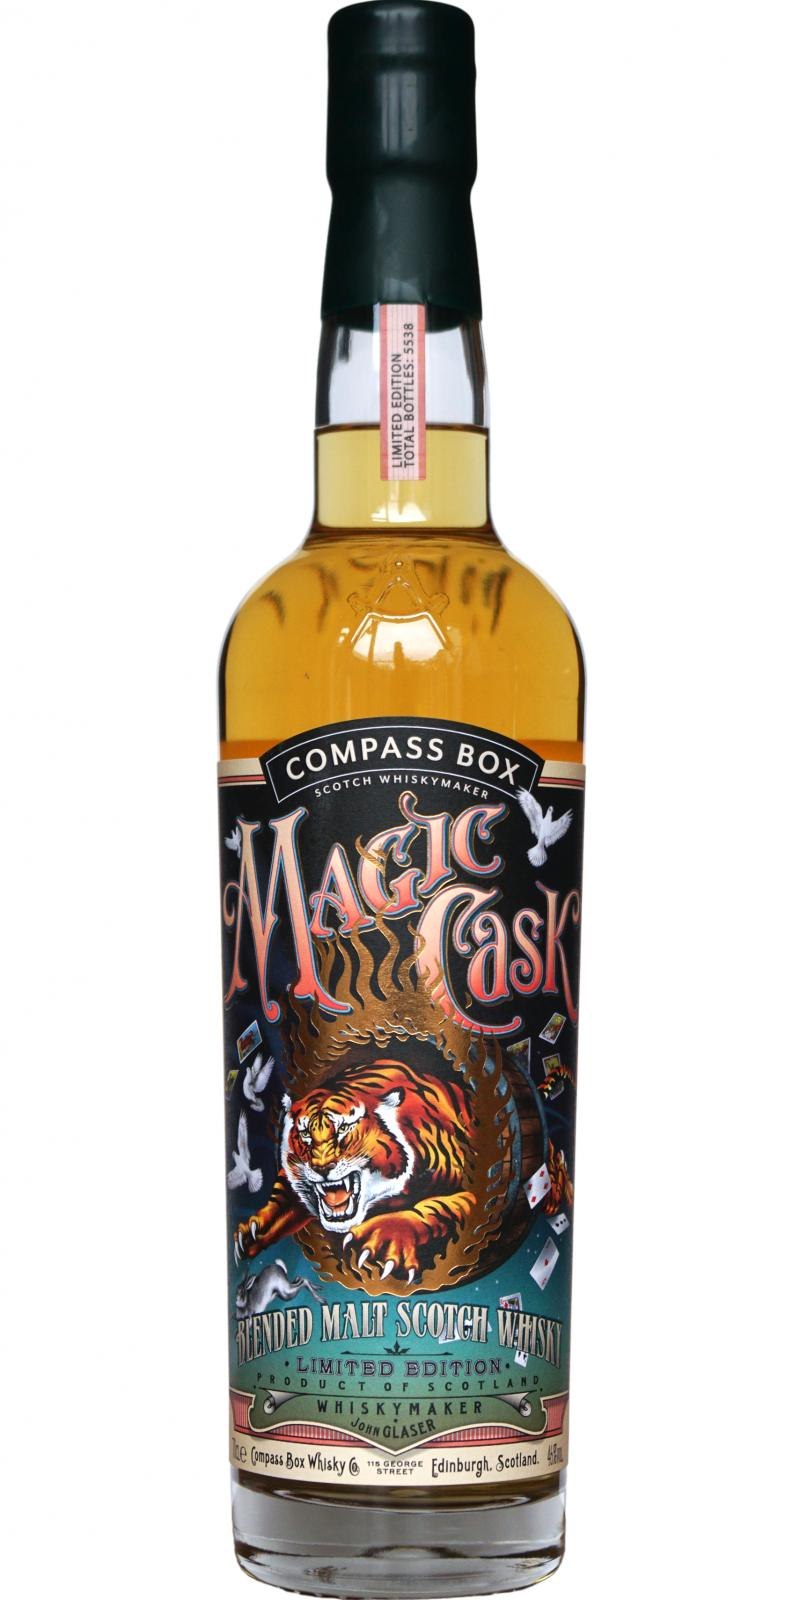 Magic Cask Blended Malt Scotch Whisky CB